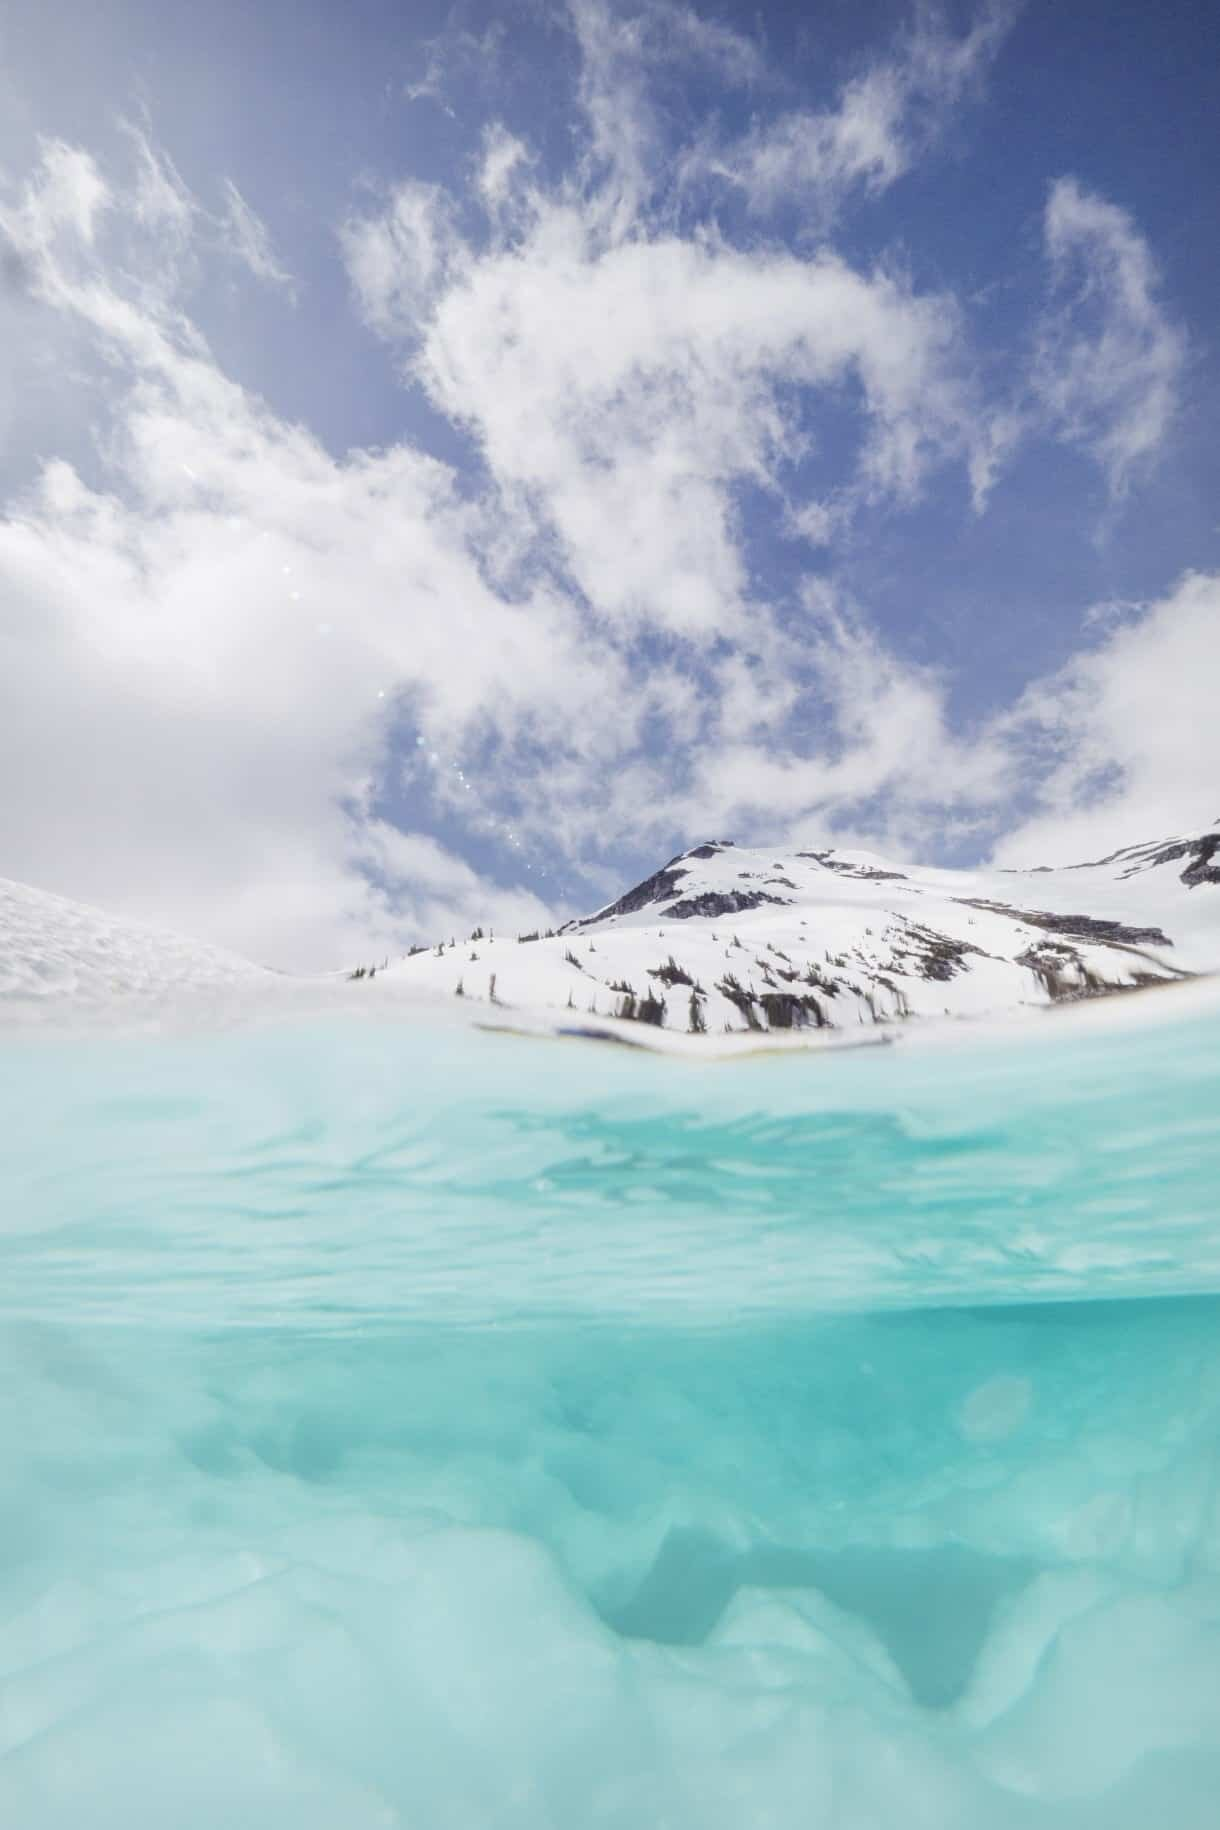 How to Use Your Camera in Extreme Climates